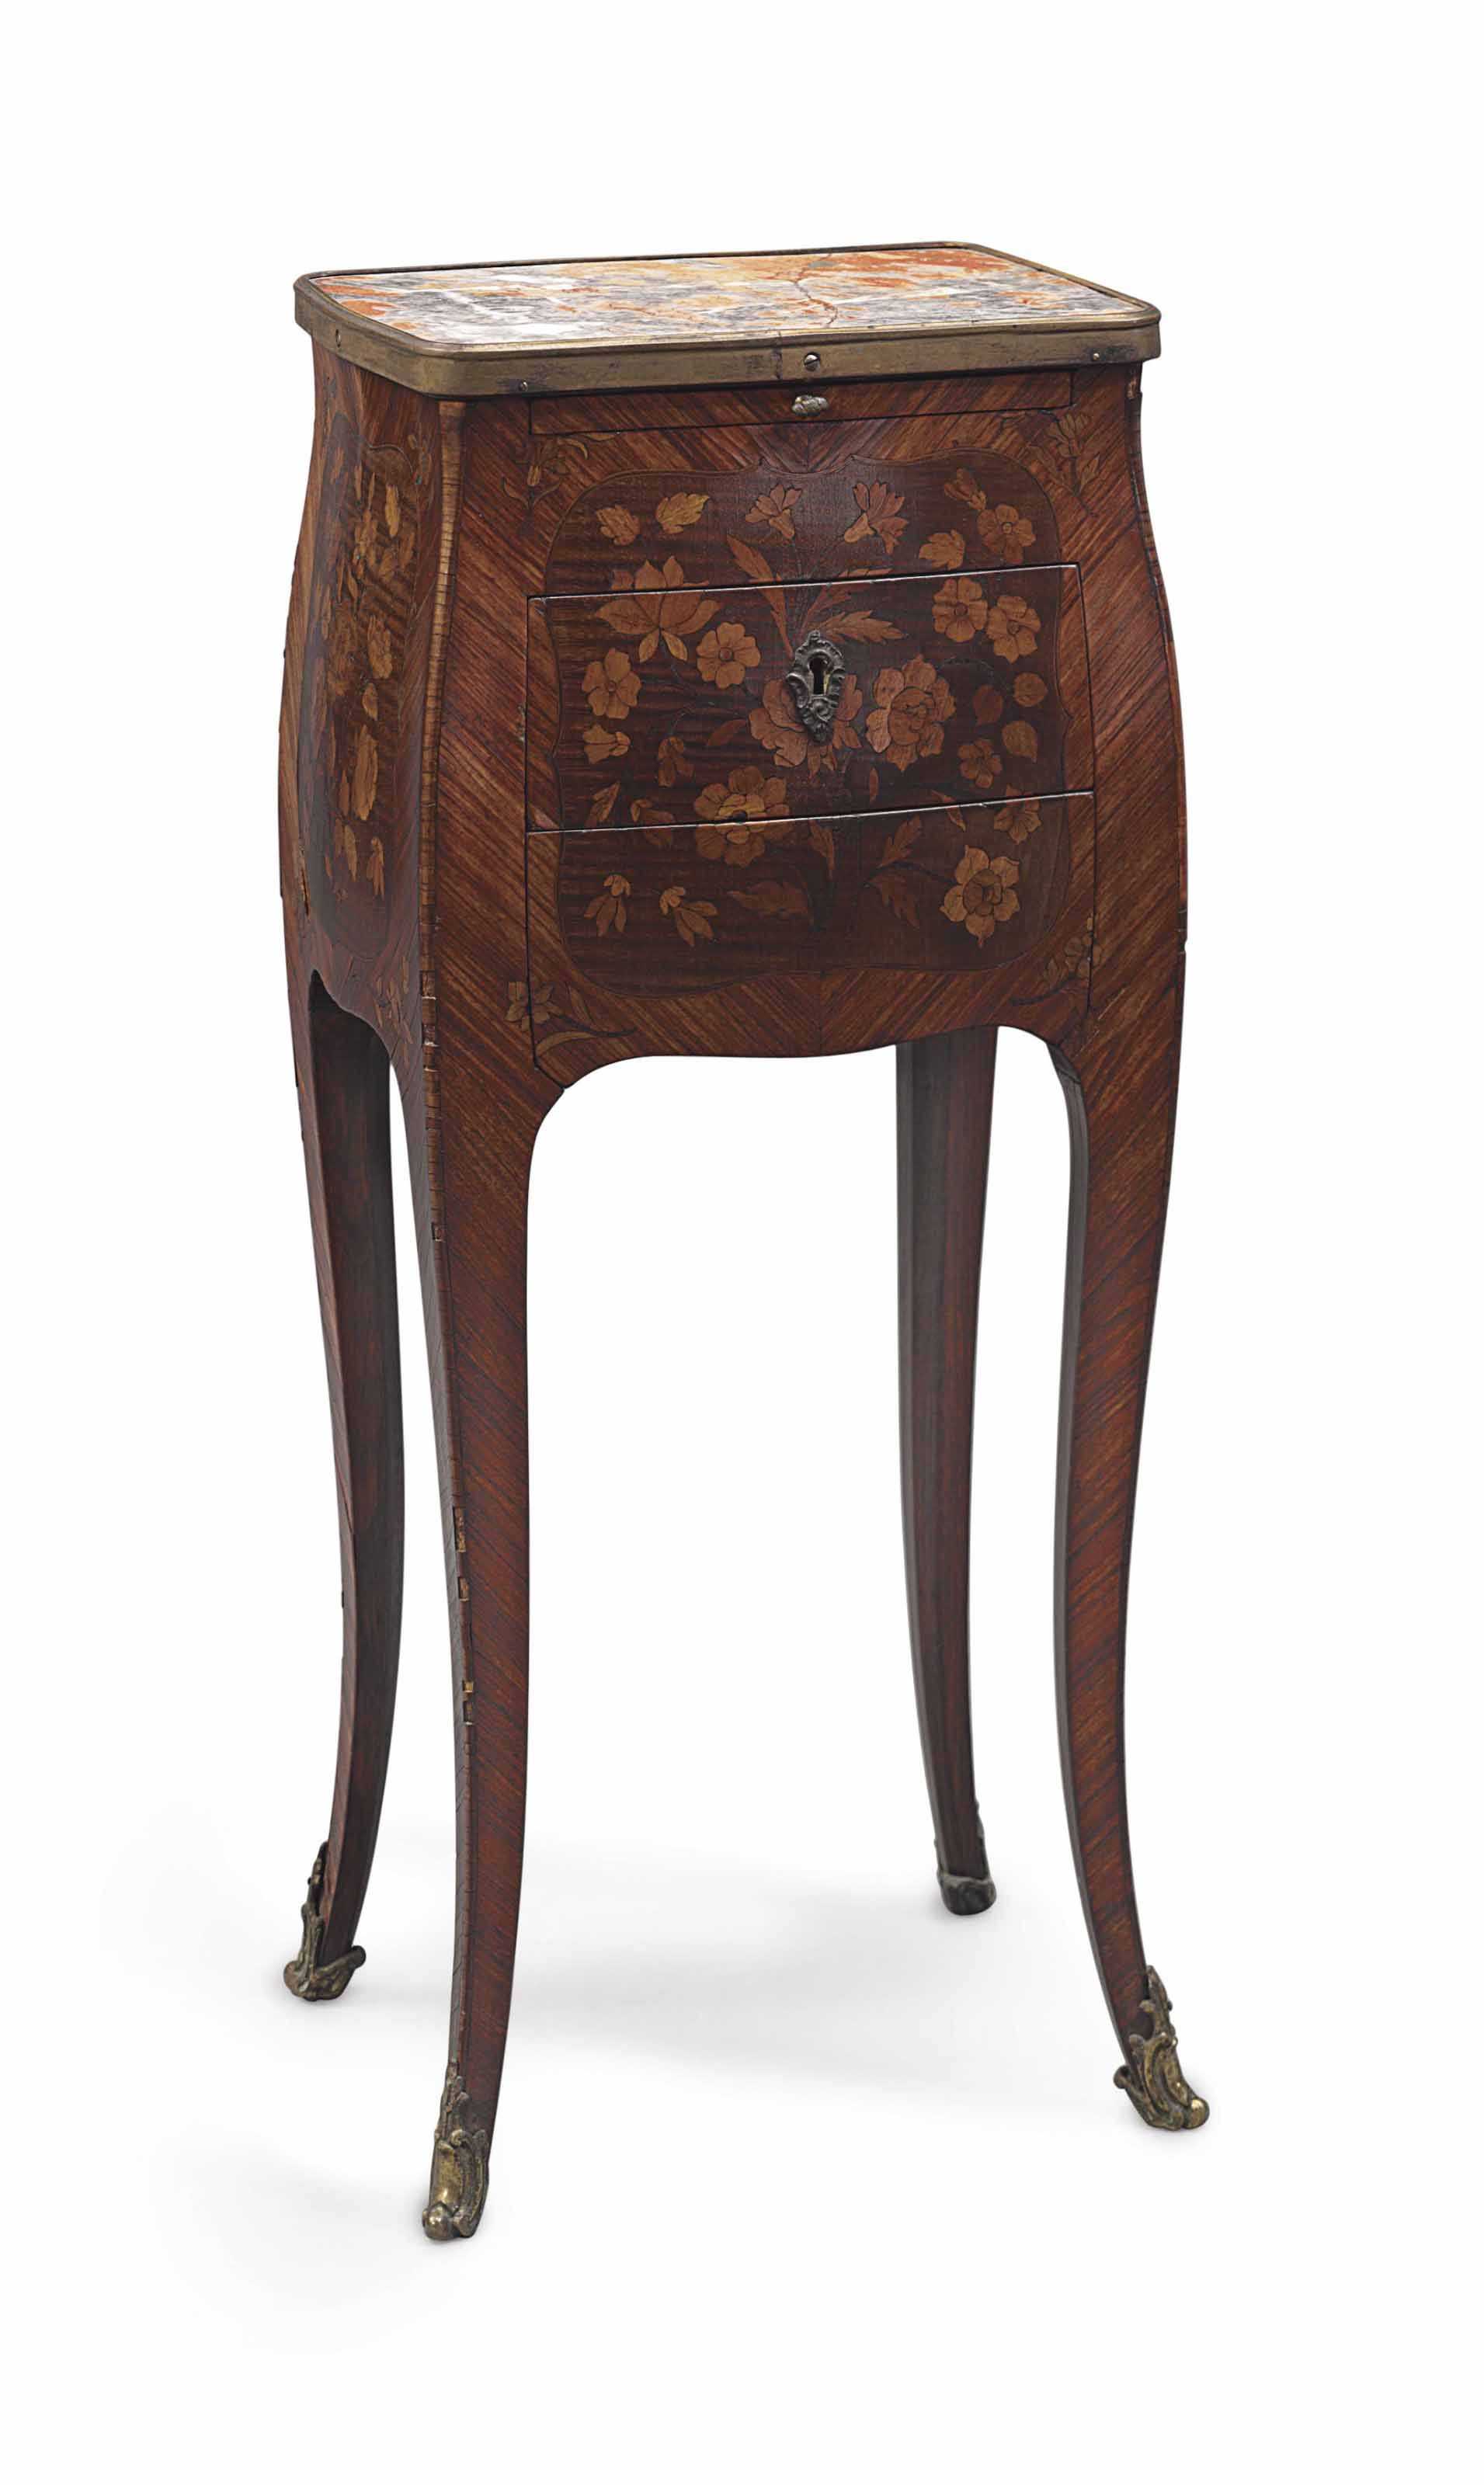 A LOUIS XV TULIPWOOD, SYCAMORE AND FLORAL MARQUETRY TABLE EN CHIFFONIERE,